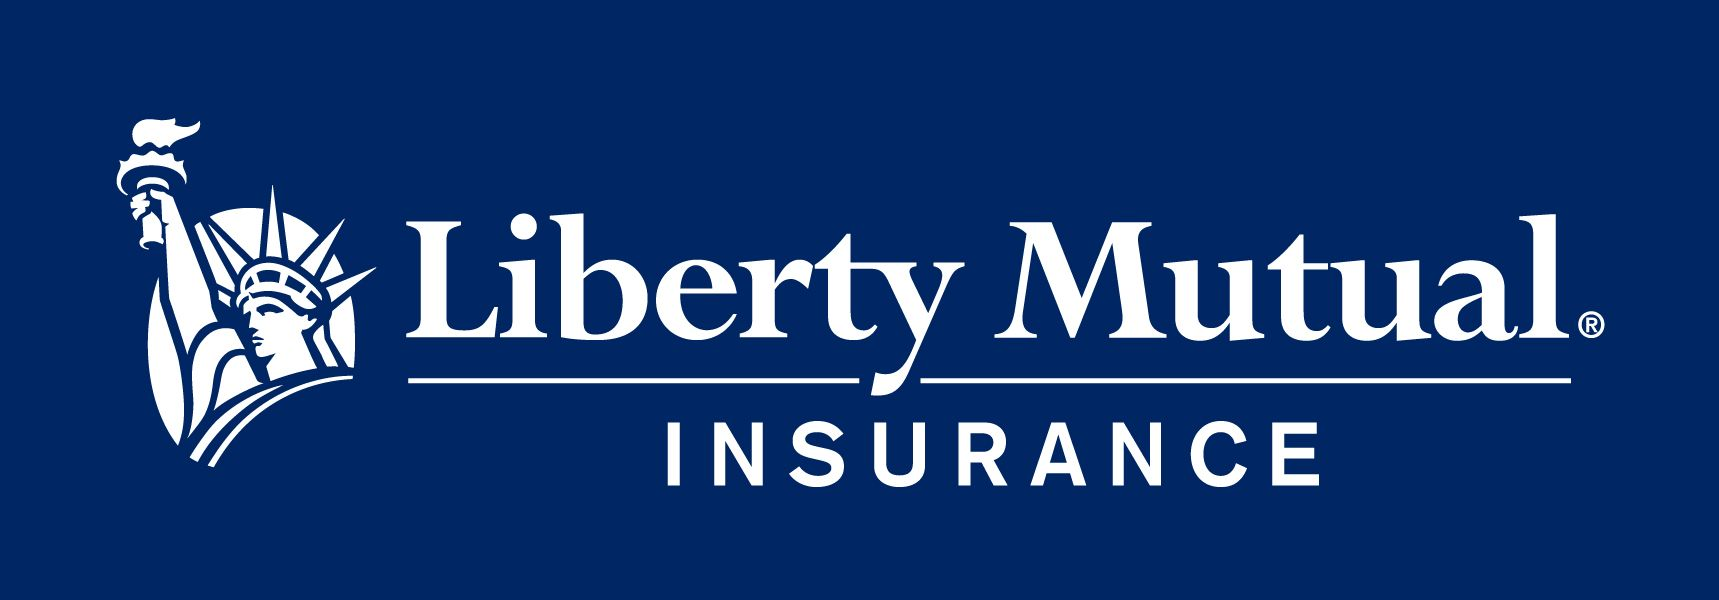 Liberty Mutual Quote Awesome Image Result For Liberty Mutual Insurance  Branding  Pinterest . Review